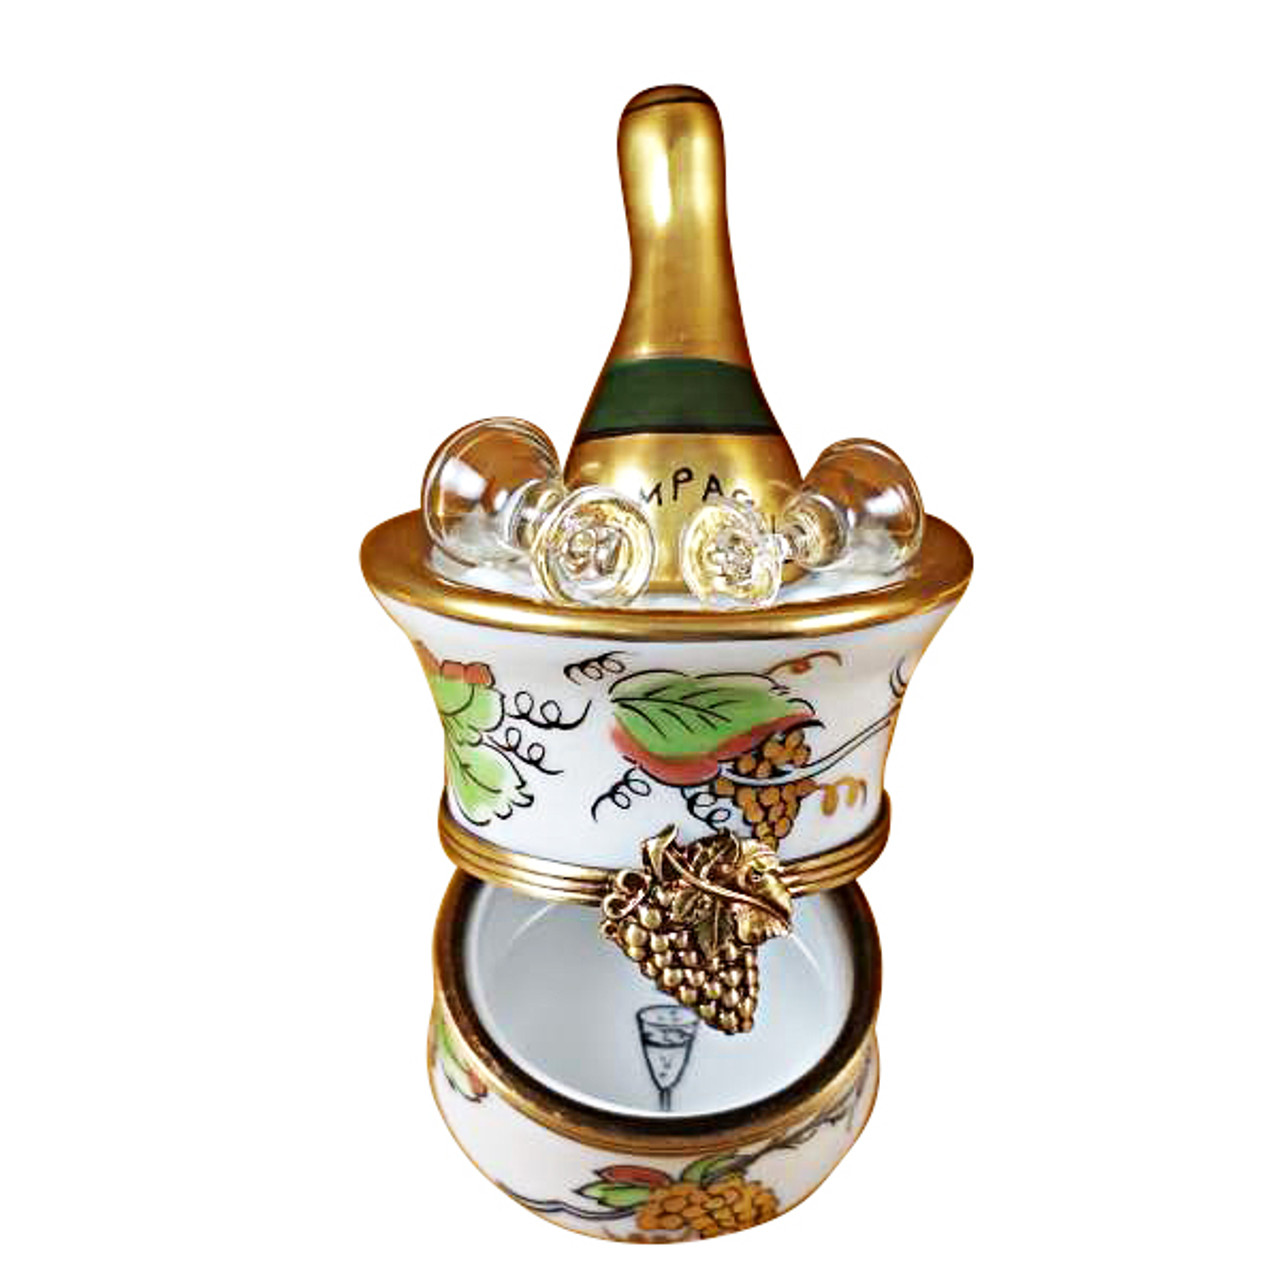 Limoges Imports Champagne Grapes Bucket Limoges Box